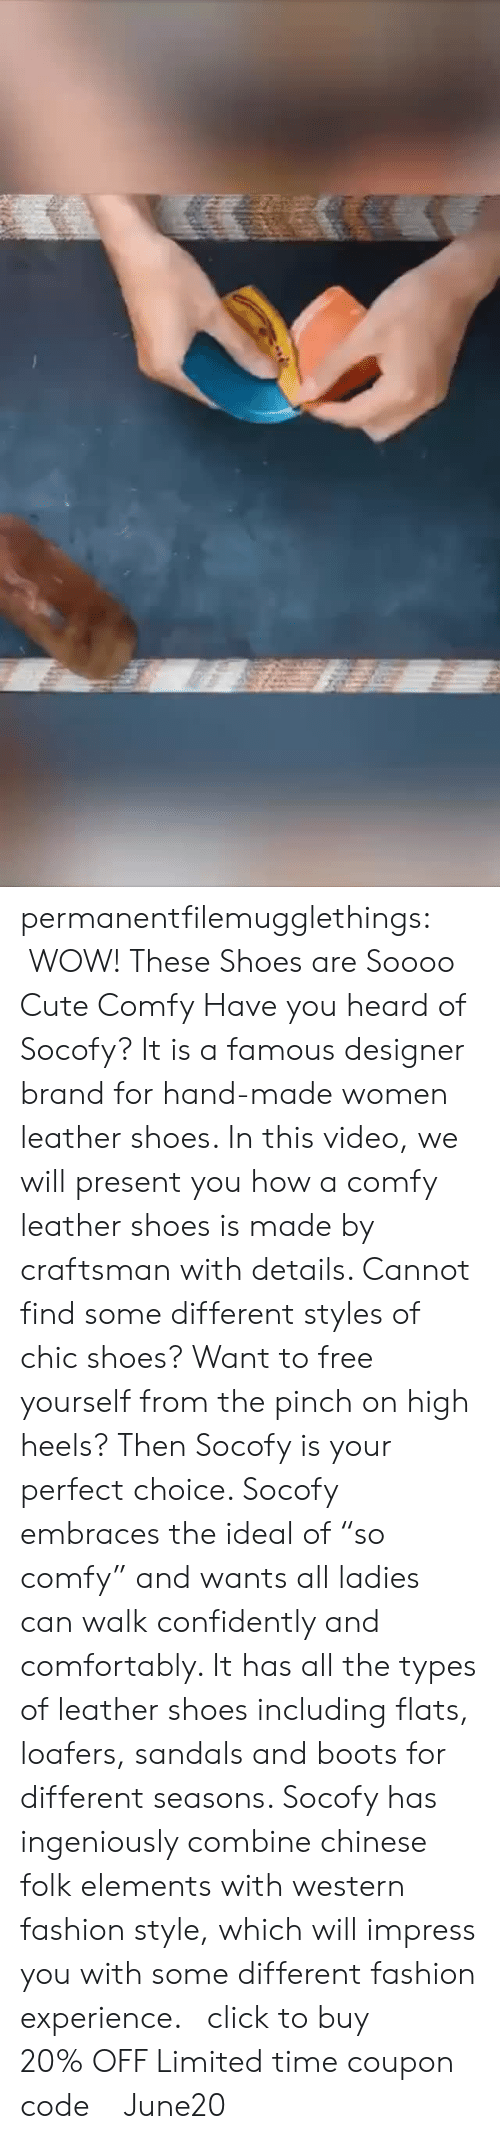 "heels: permanentfilemugglethings:   WOW! These Shoes are Soooo Cute  Comfy  Have you heard of Socofy? It is a famous designer brand for hand-made women leather shoes. In this video, we will present you how a comfy leather shoes is made by craftsman with details. Cannot find some different styles of chic shoes? Want to free yourself from the pinch on high heels? Then Socofy is your perfect choice. Socofy embraces the ideal of ""so comfy"" and wants all ladies can walk confidently and comfortably. It has all the types of leather shoes including flats, loafers, sandals and boots for different seasons. Socofy has ingeniously combine chinese folk elements with western fashion style, which will impress you with some different fashion experience.   click to buy!!! 20% OFF Limited time coupon code : June20"